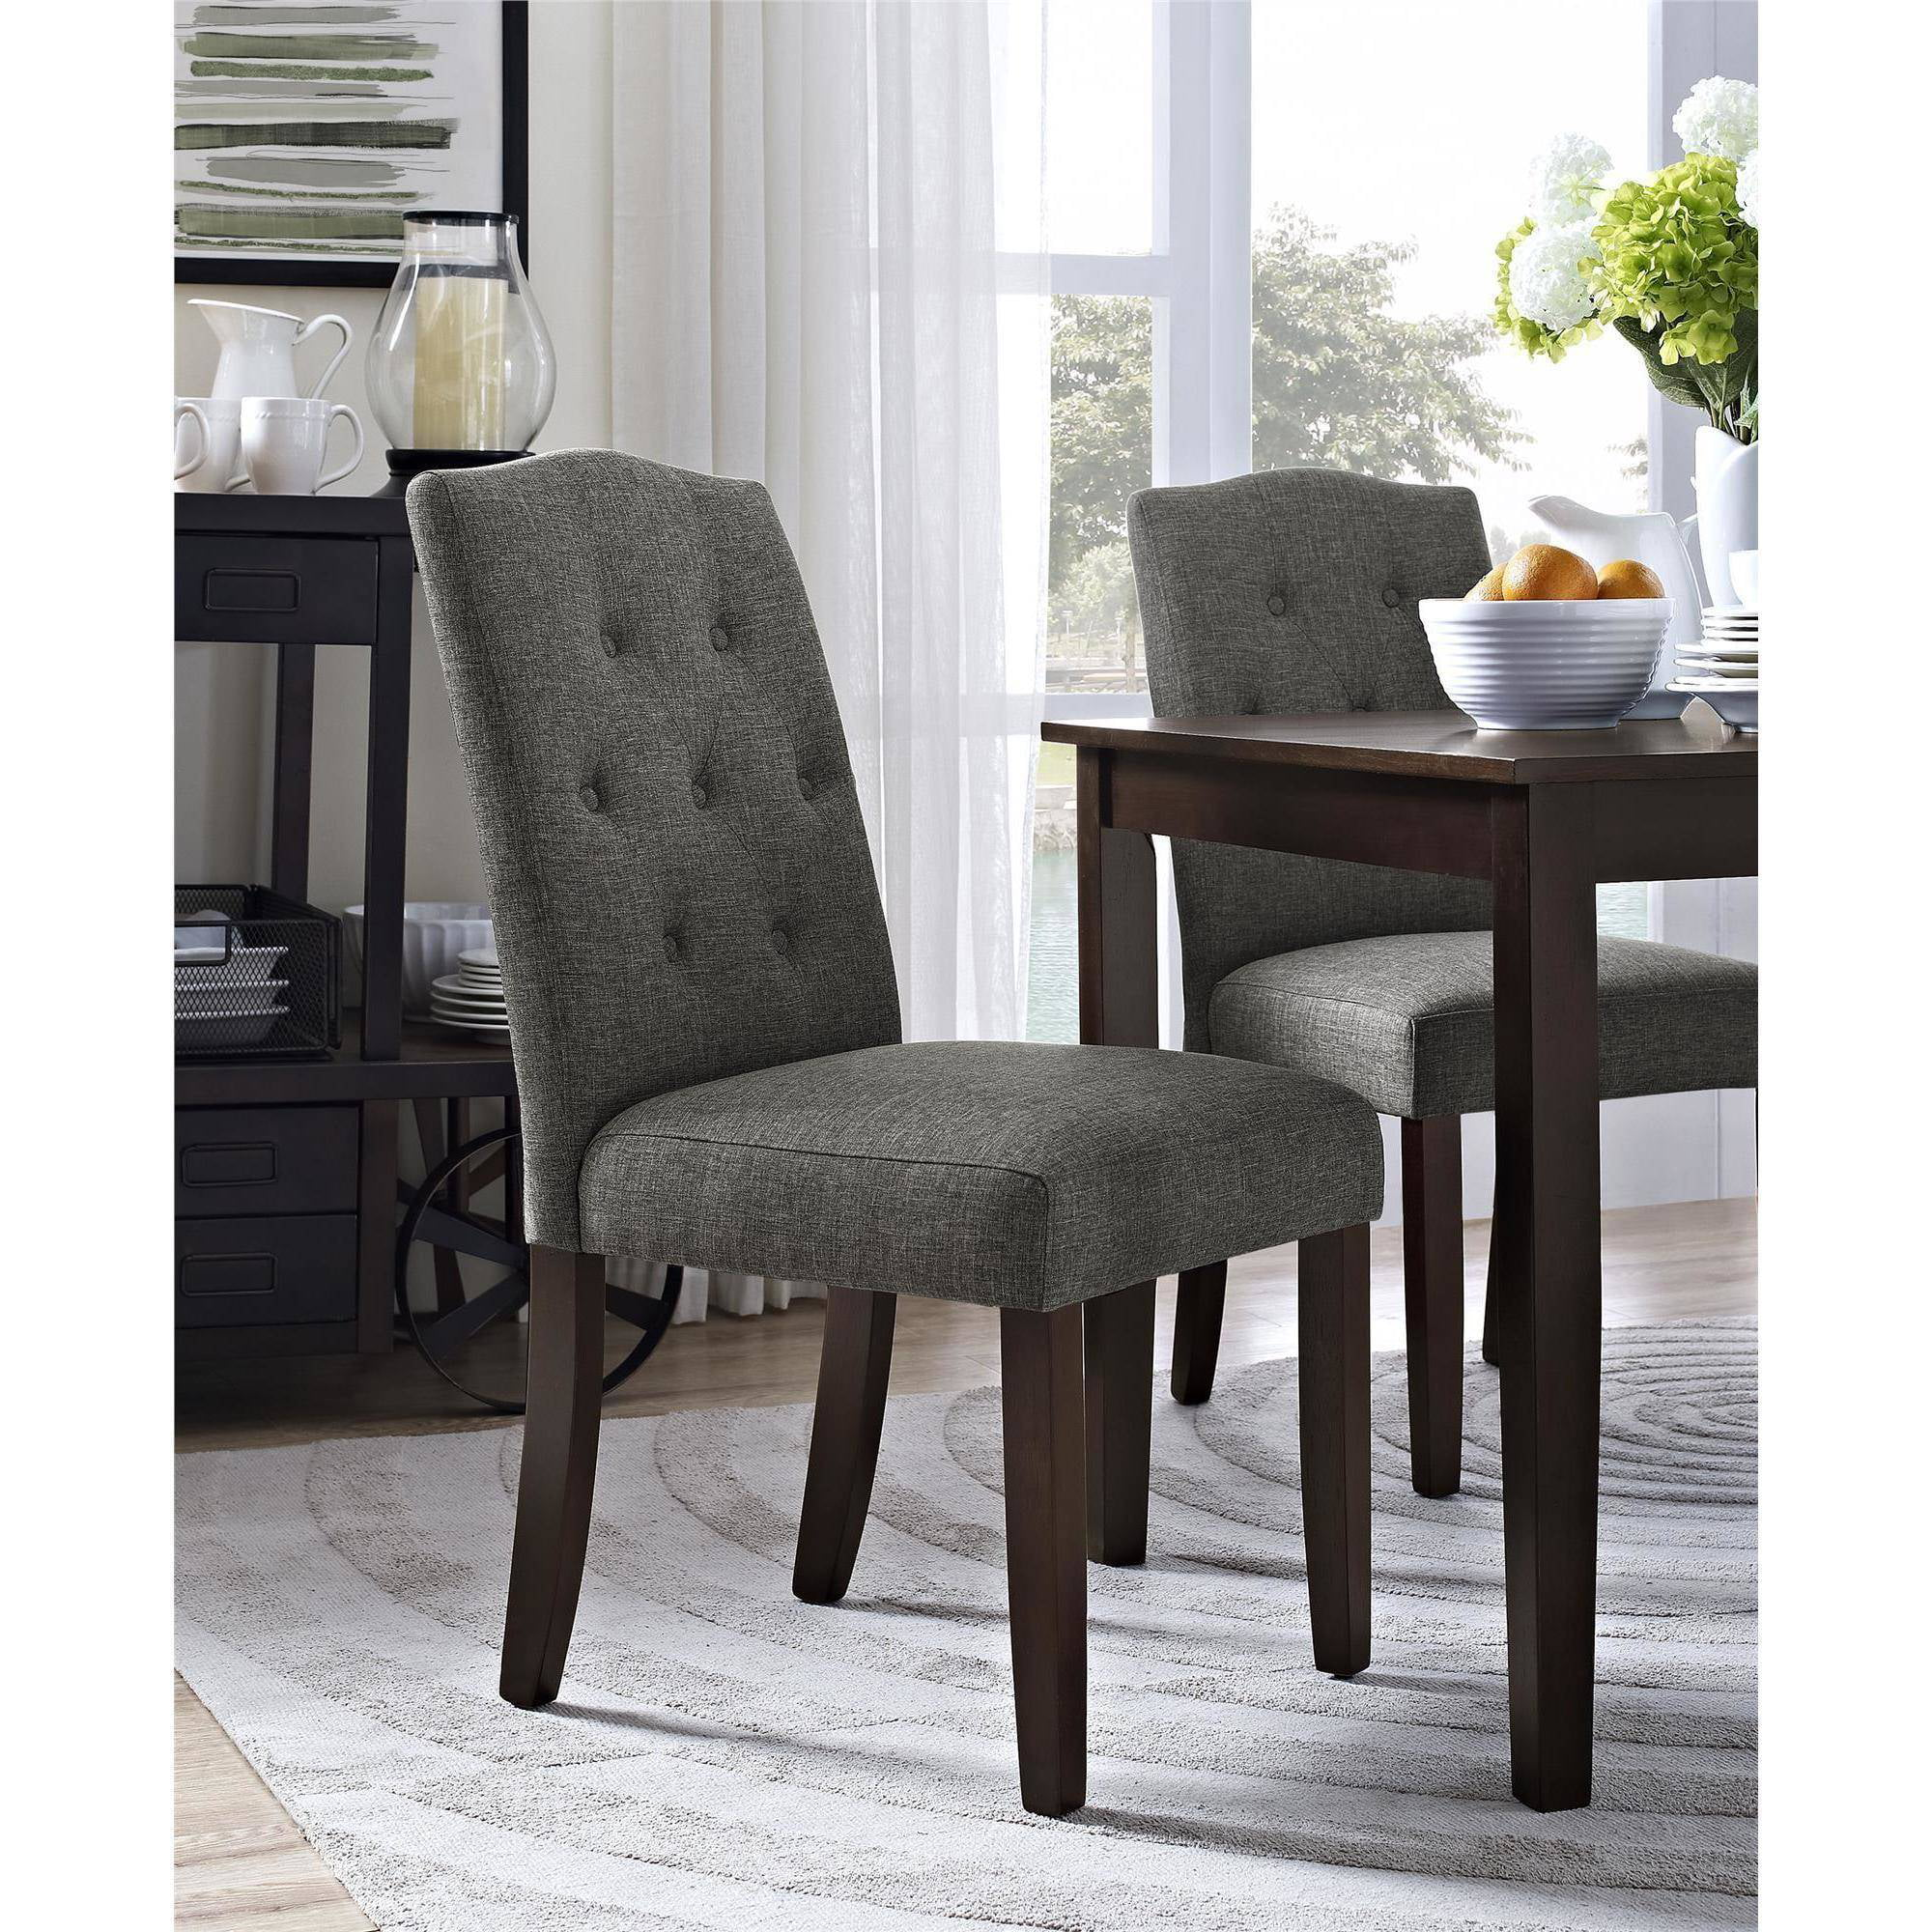 Better Homes and Gardens Parsons Tufted Dining Chair, Multiple Colors by Dorel Asia